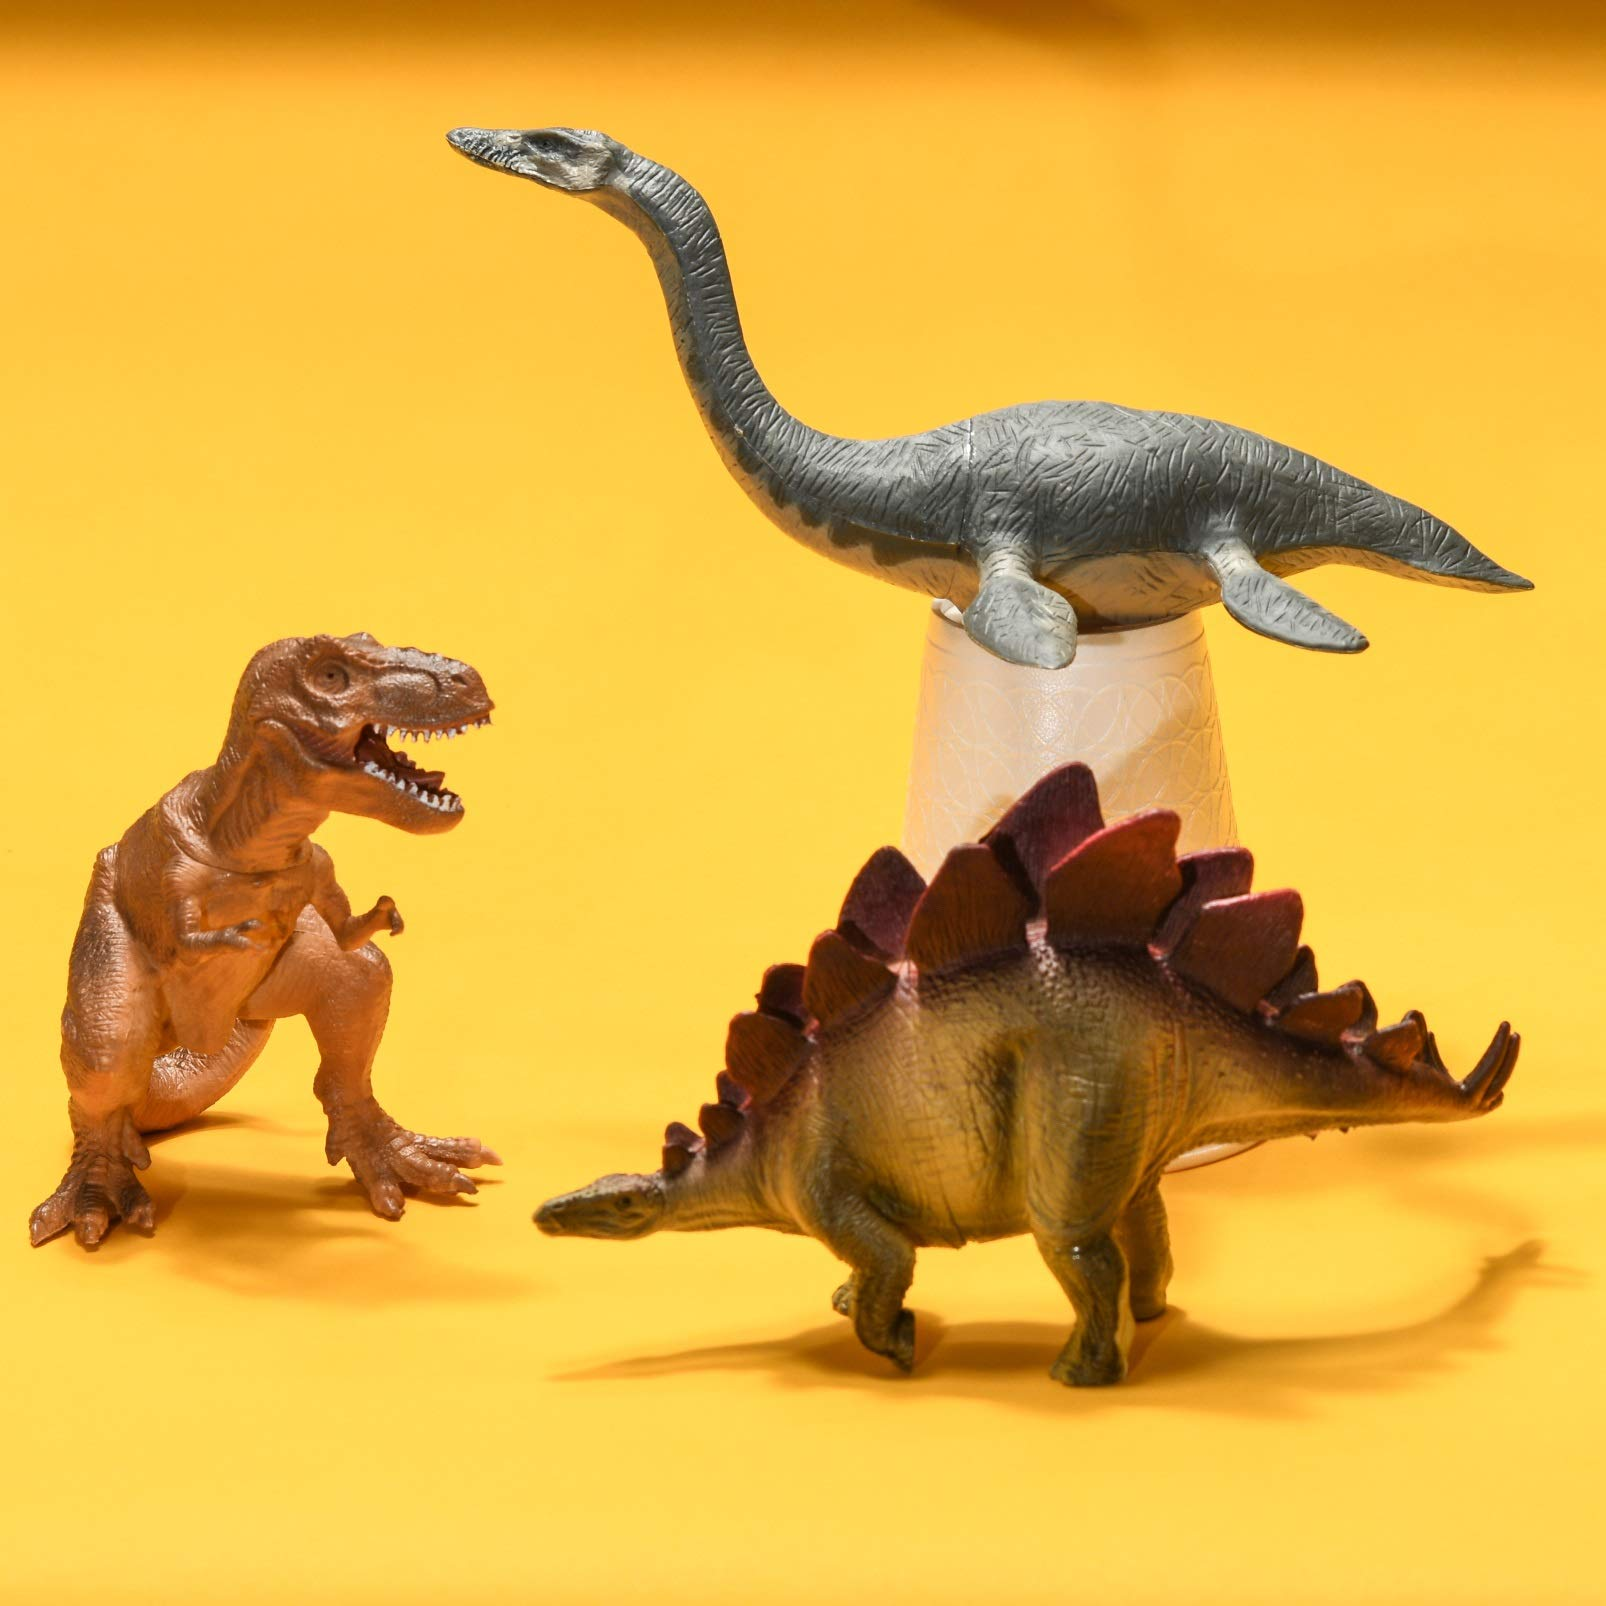 Prextex Realistic Looking 10'' Dinosaurs Pack of 12 Large Plastic Assorted Dinosaur Figures by Prextex (Image #6)